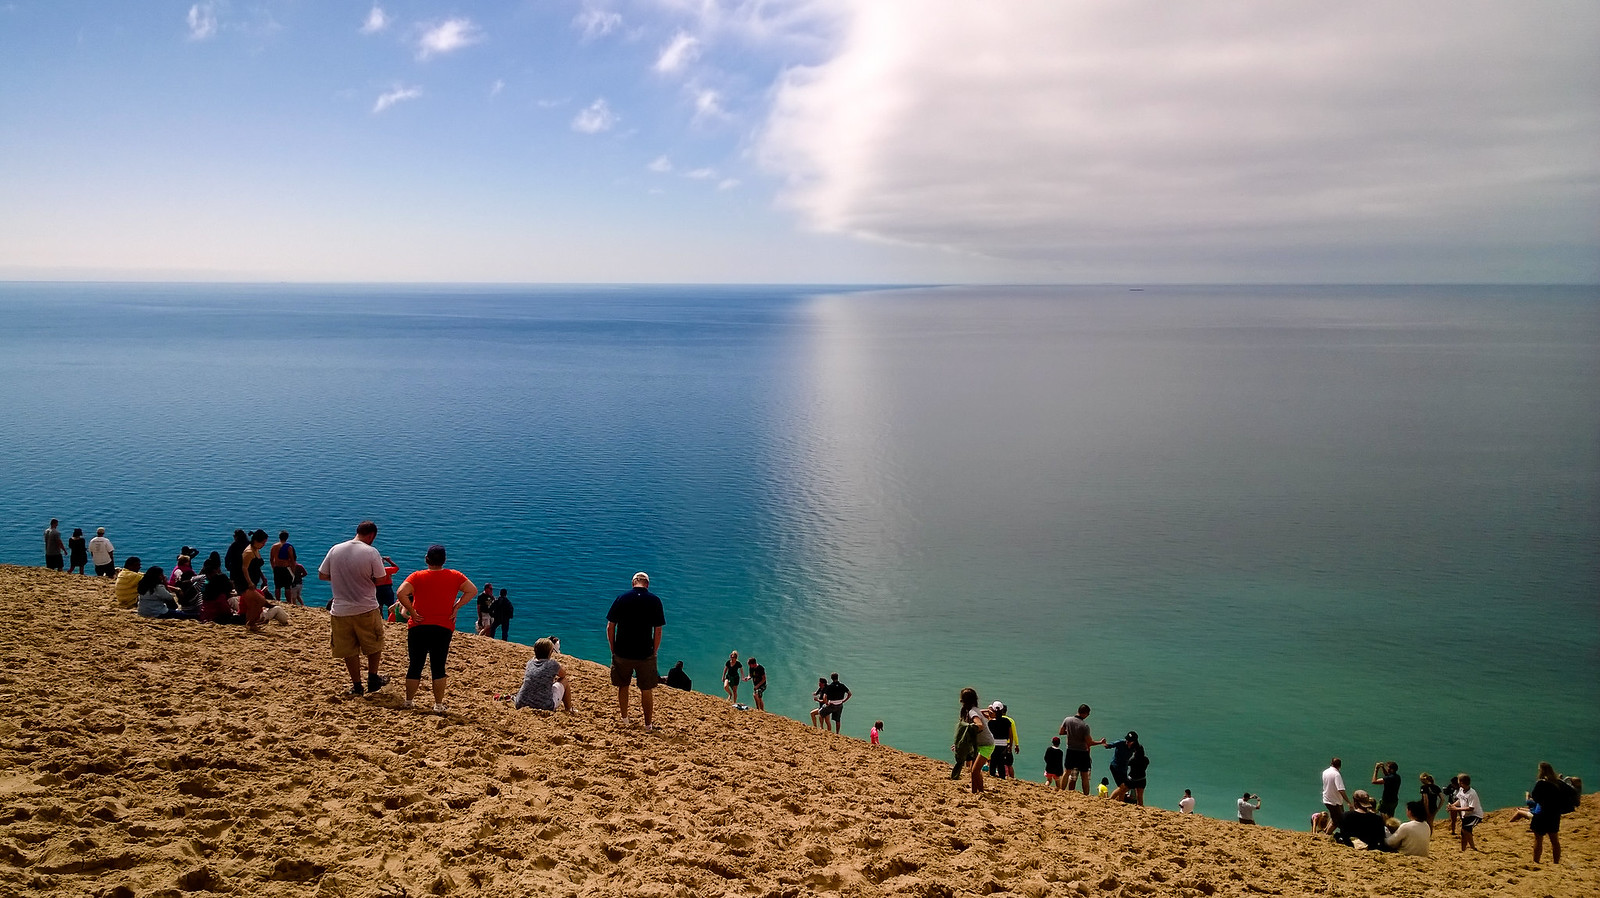 Lake Michigan overlook at Pierce Stocking Scenic Drive